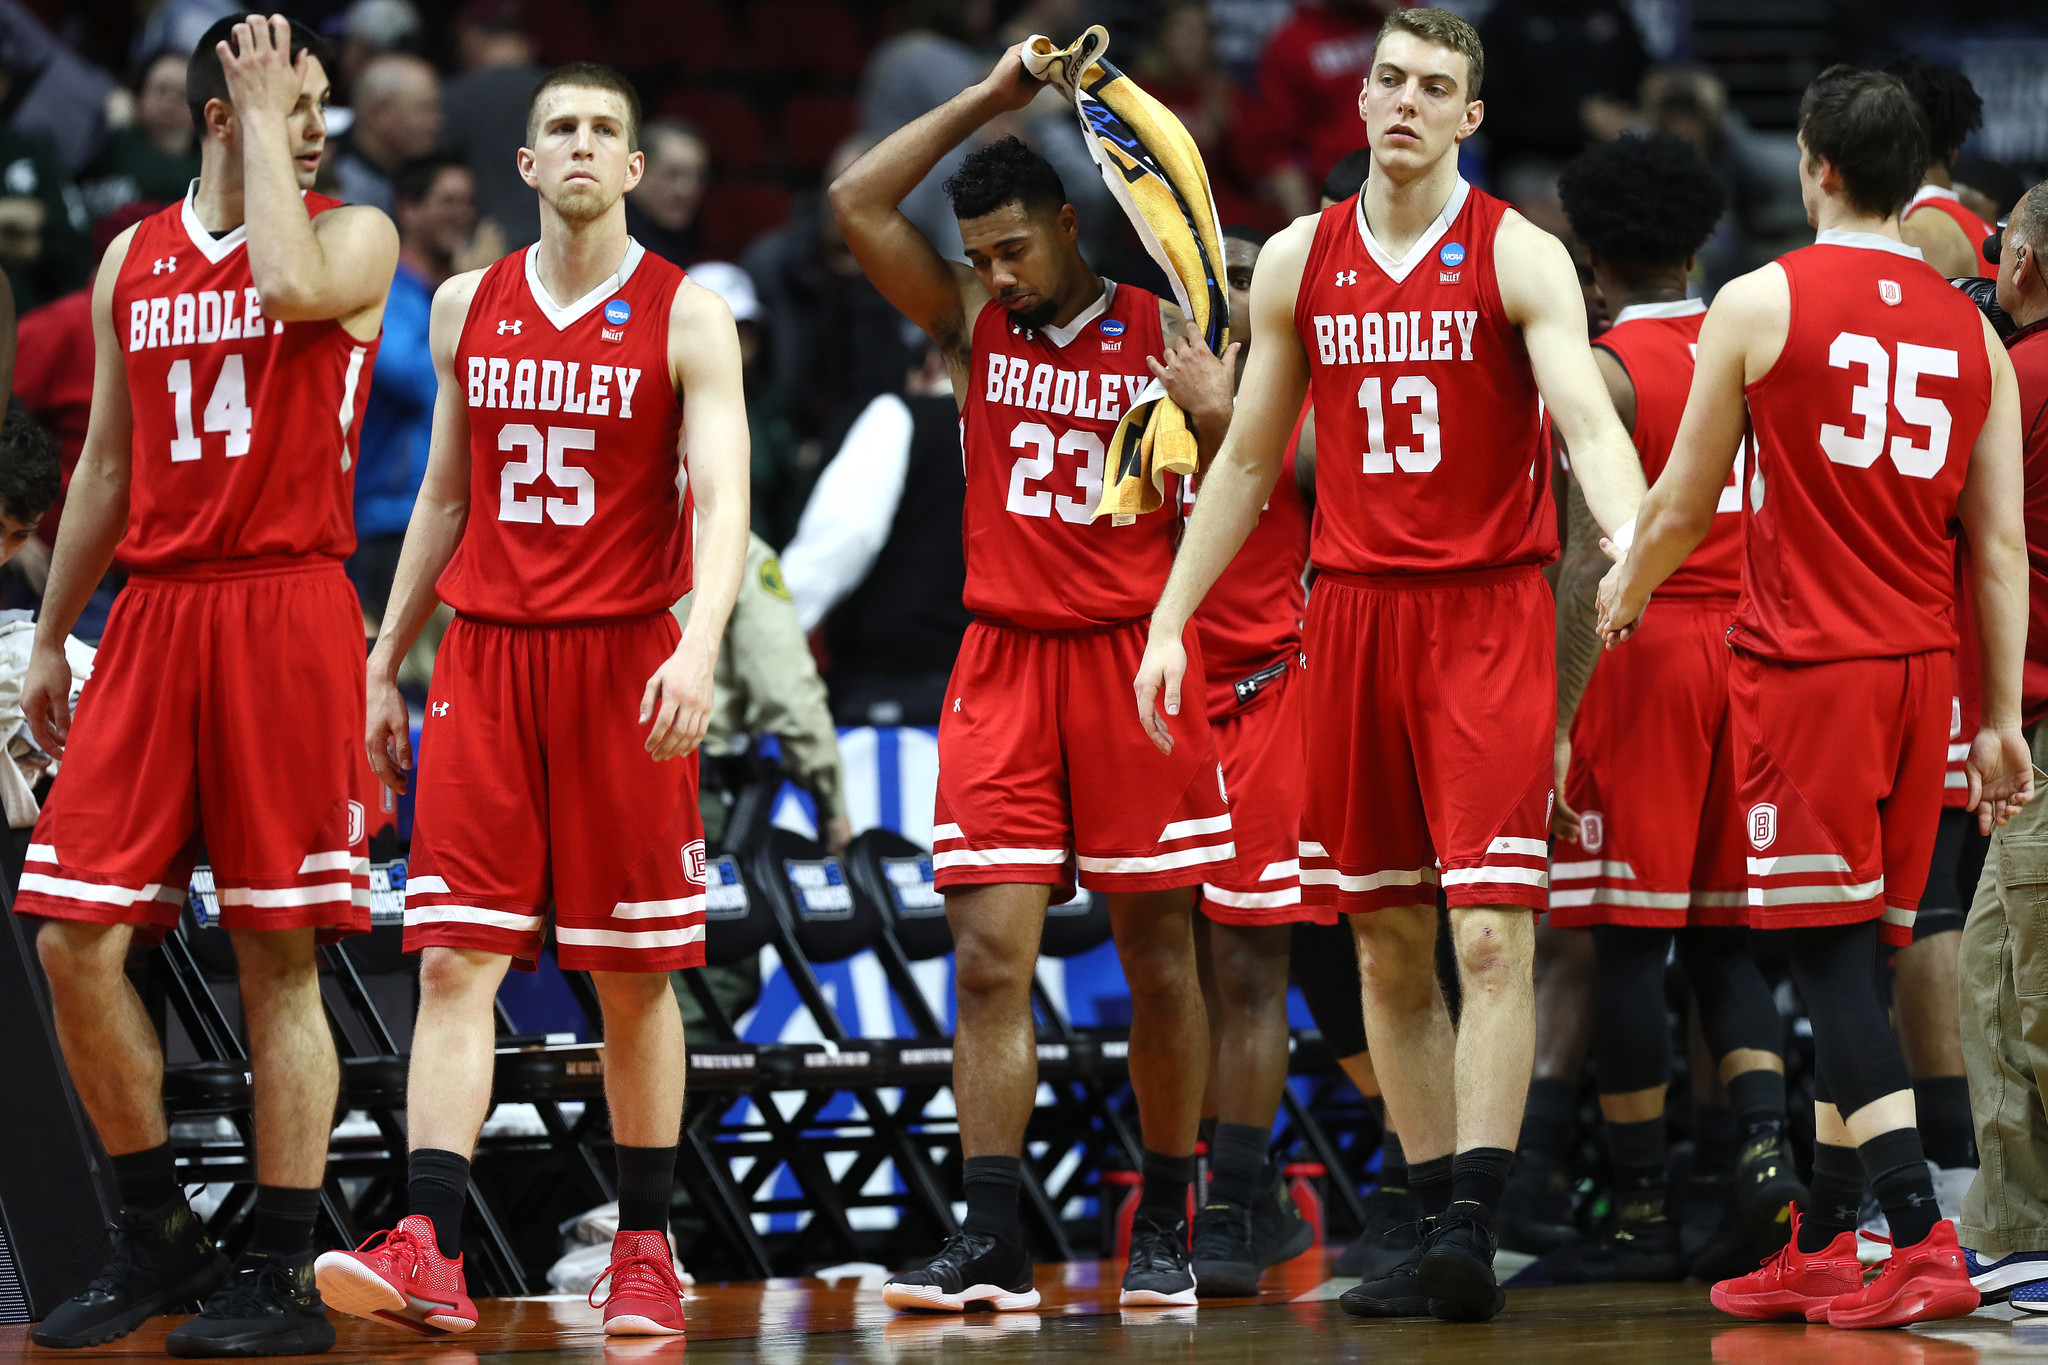 72ffe6976788 Day 1 of the NCAA Tournament  Purdue rolls past Old Dominion to cap Big  Ten s 5-0 day - Chicago Tribune